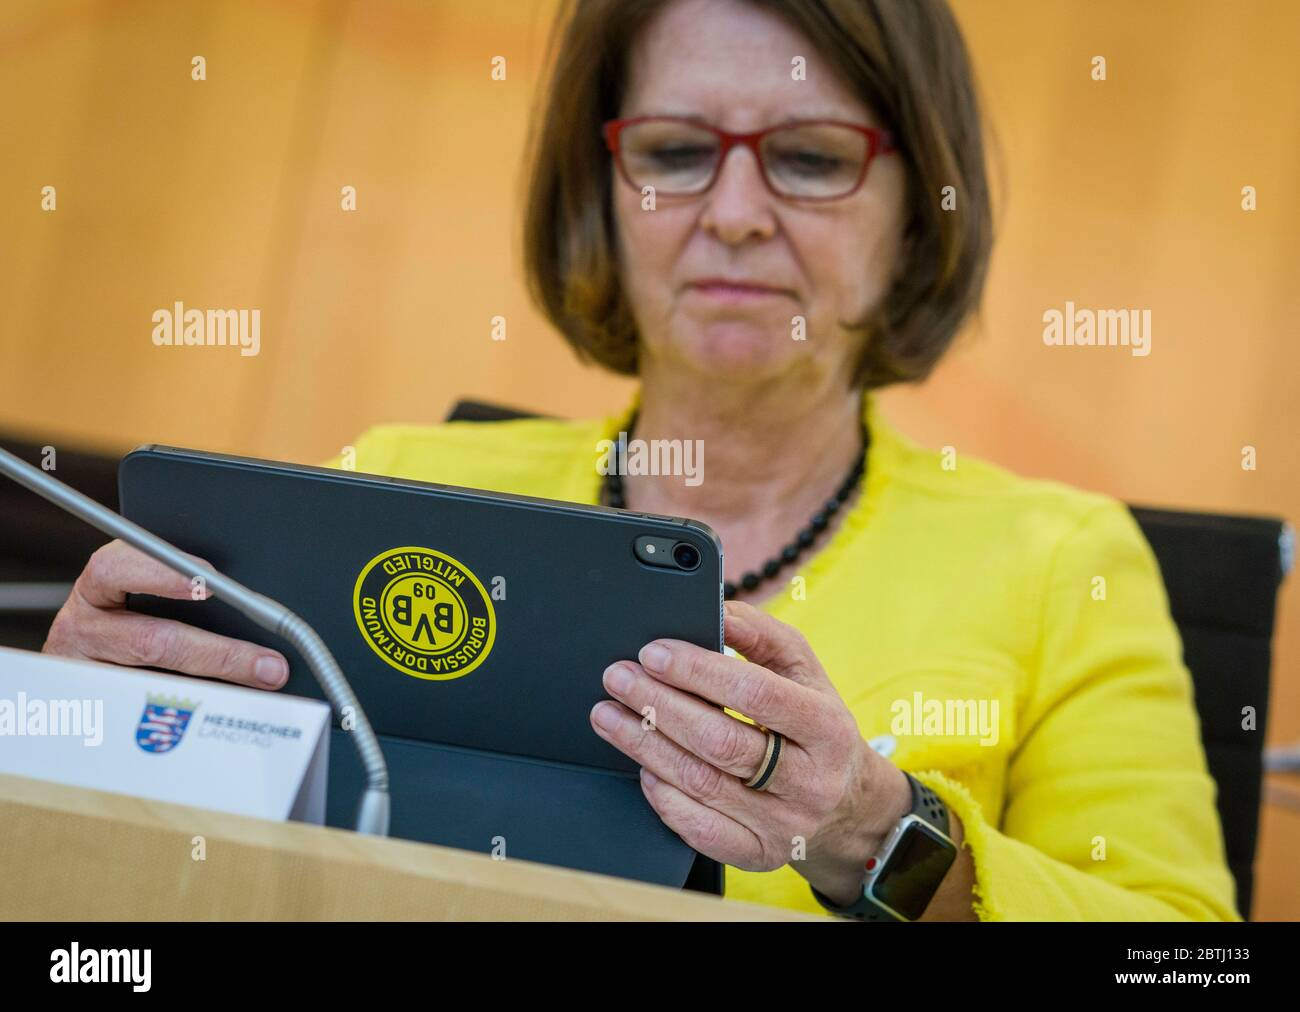 Wiesbaden, Germany. 26th May, 2020. Priska Hinz, the Hessian Minister for Environmental Protection, Agriculture and Consumer Protection (Greens), sits with her laptop on the government bench during the plenary debate in the Hessian state parliament. It bears a sticker with the logo of Borussia Dortmund, the Bundesliga football club. The minister is a member of the club. Credit: Frank Rumpenhorst/dpa/Alamy Live News Stock Photo